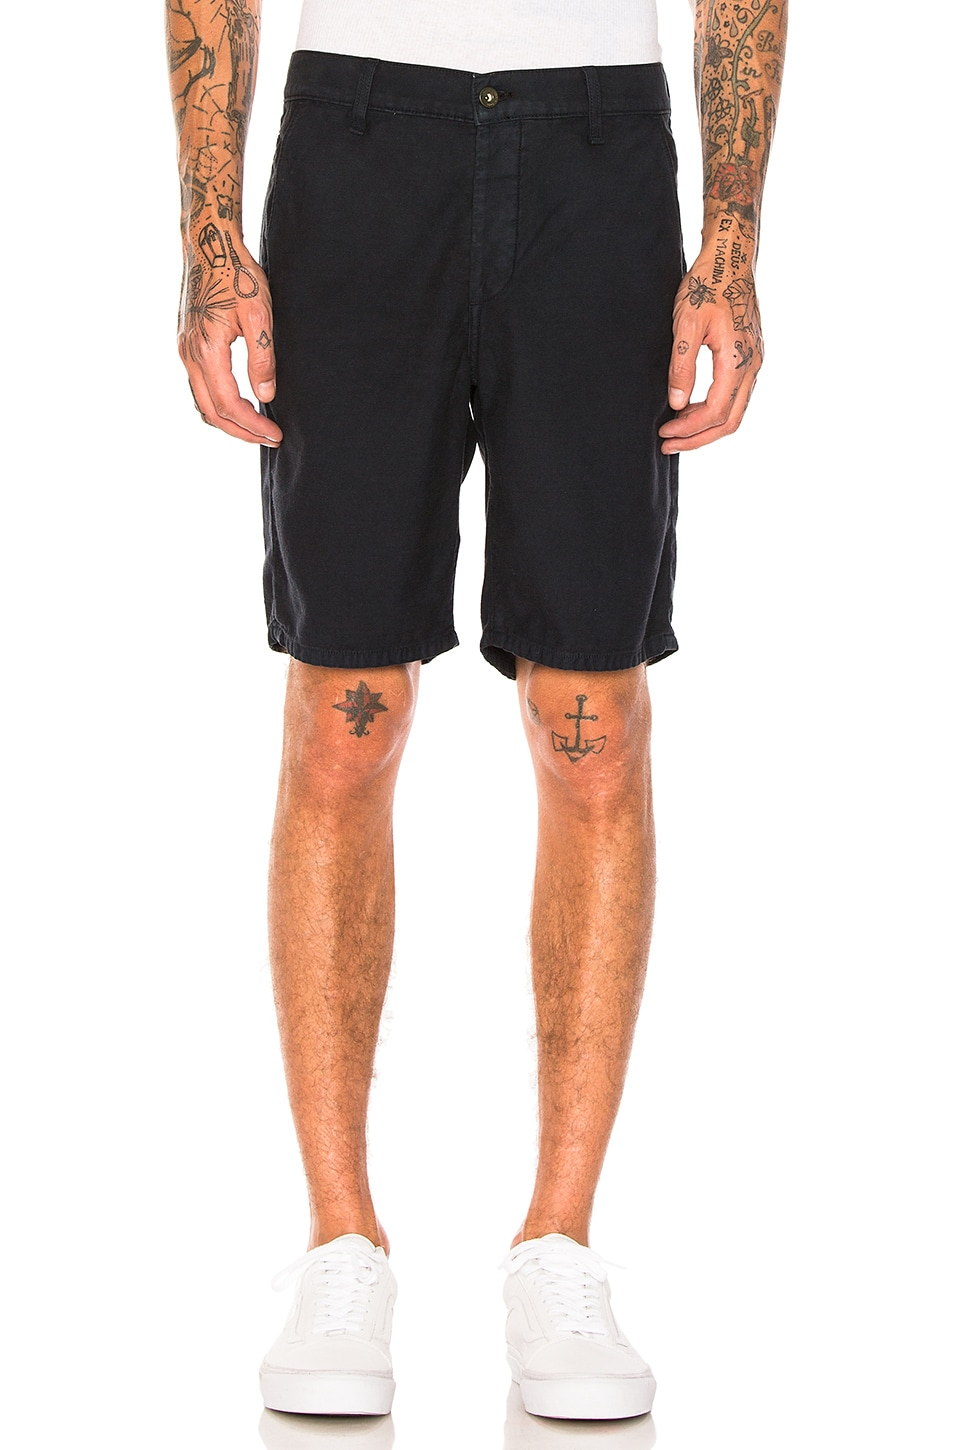 Standard Issue Shorts by Rag & Bone